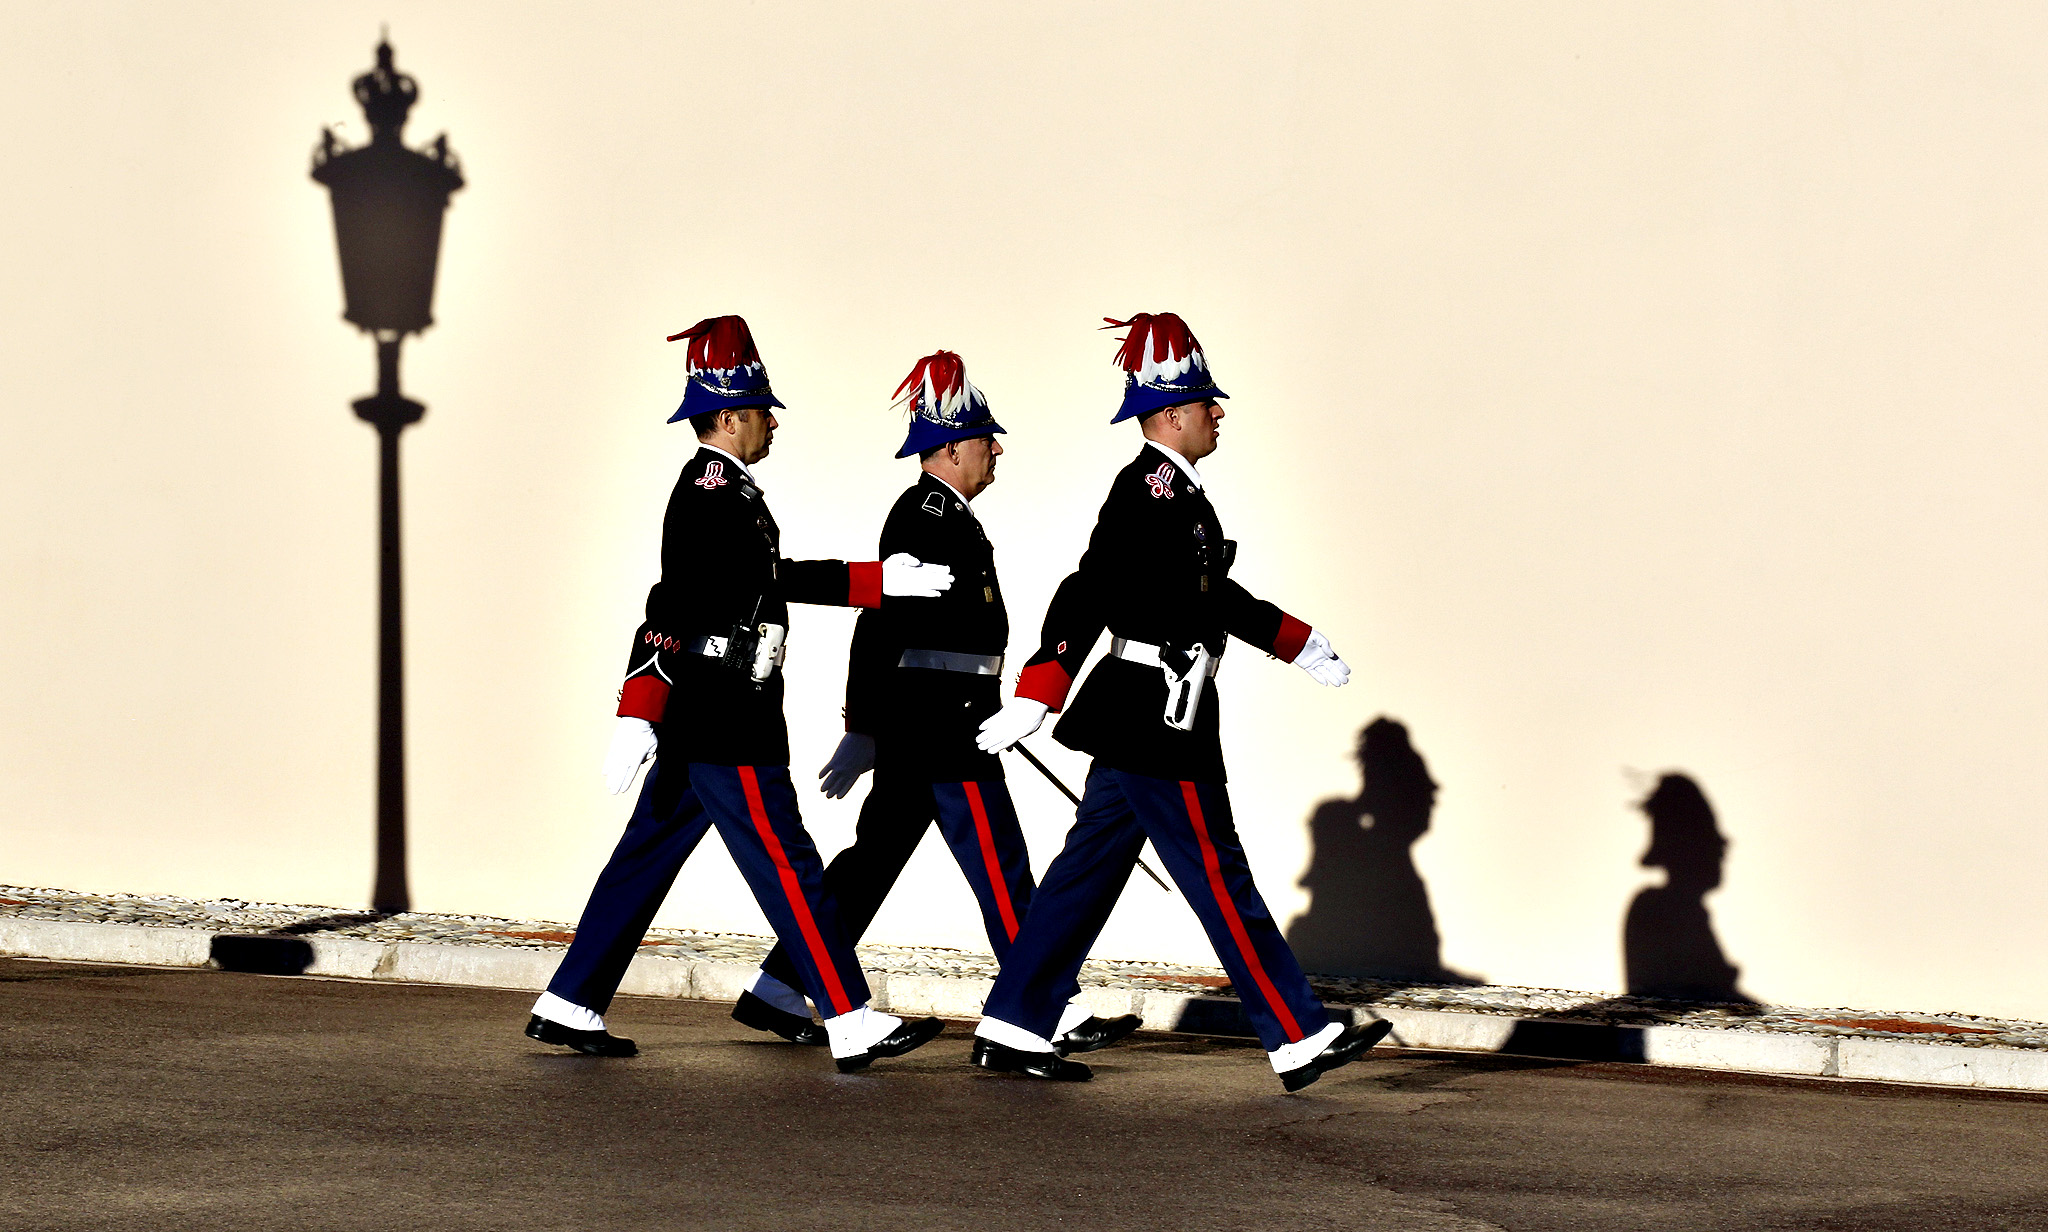 Monaco guards arrive for a ceremony announcing the birth of Monaco royal twins Gabriella Therese Marie and Jacques Honore Rainier, outside the Palace in Monaco, Thursday, Dec.11 , 2014.  For the first time since Monaco was founded in the 13th century, its royal family gave birth to twins on Wednesday, and dozens of cannons were fired to celebrate. Monaco's Princess Charlene had a girl first and a boy second, but the boy will be the principality's future ruler, reflecting the male priority of Monaco's laws of succession.